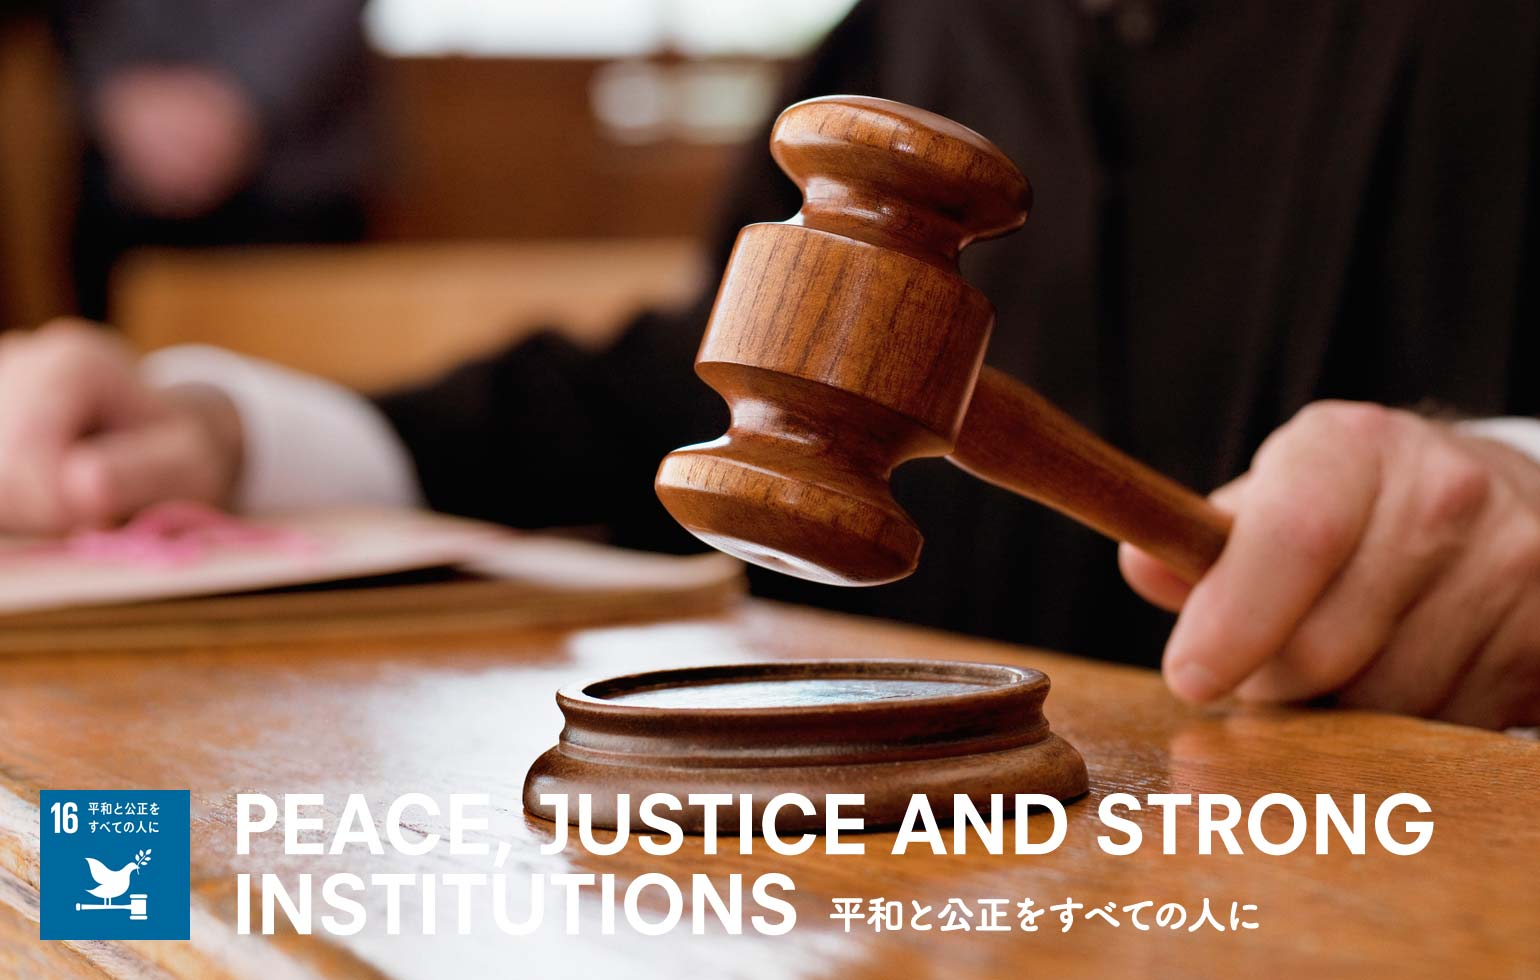 PEACE, JUSTICE AND STRONG INSTITUTIONS - 平和と公正をすべての人に SDGs 画像素材